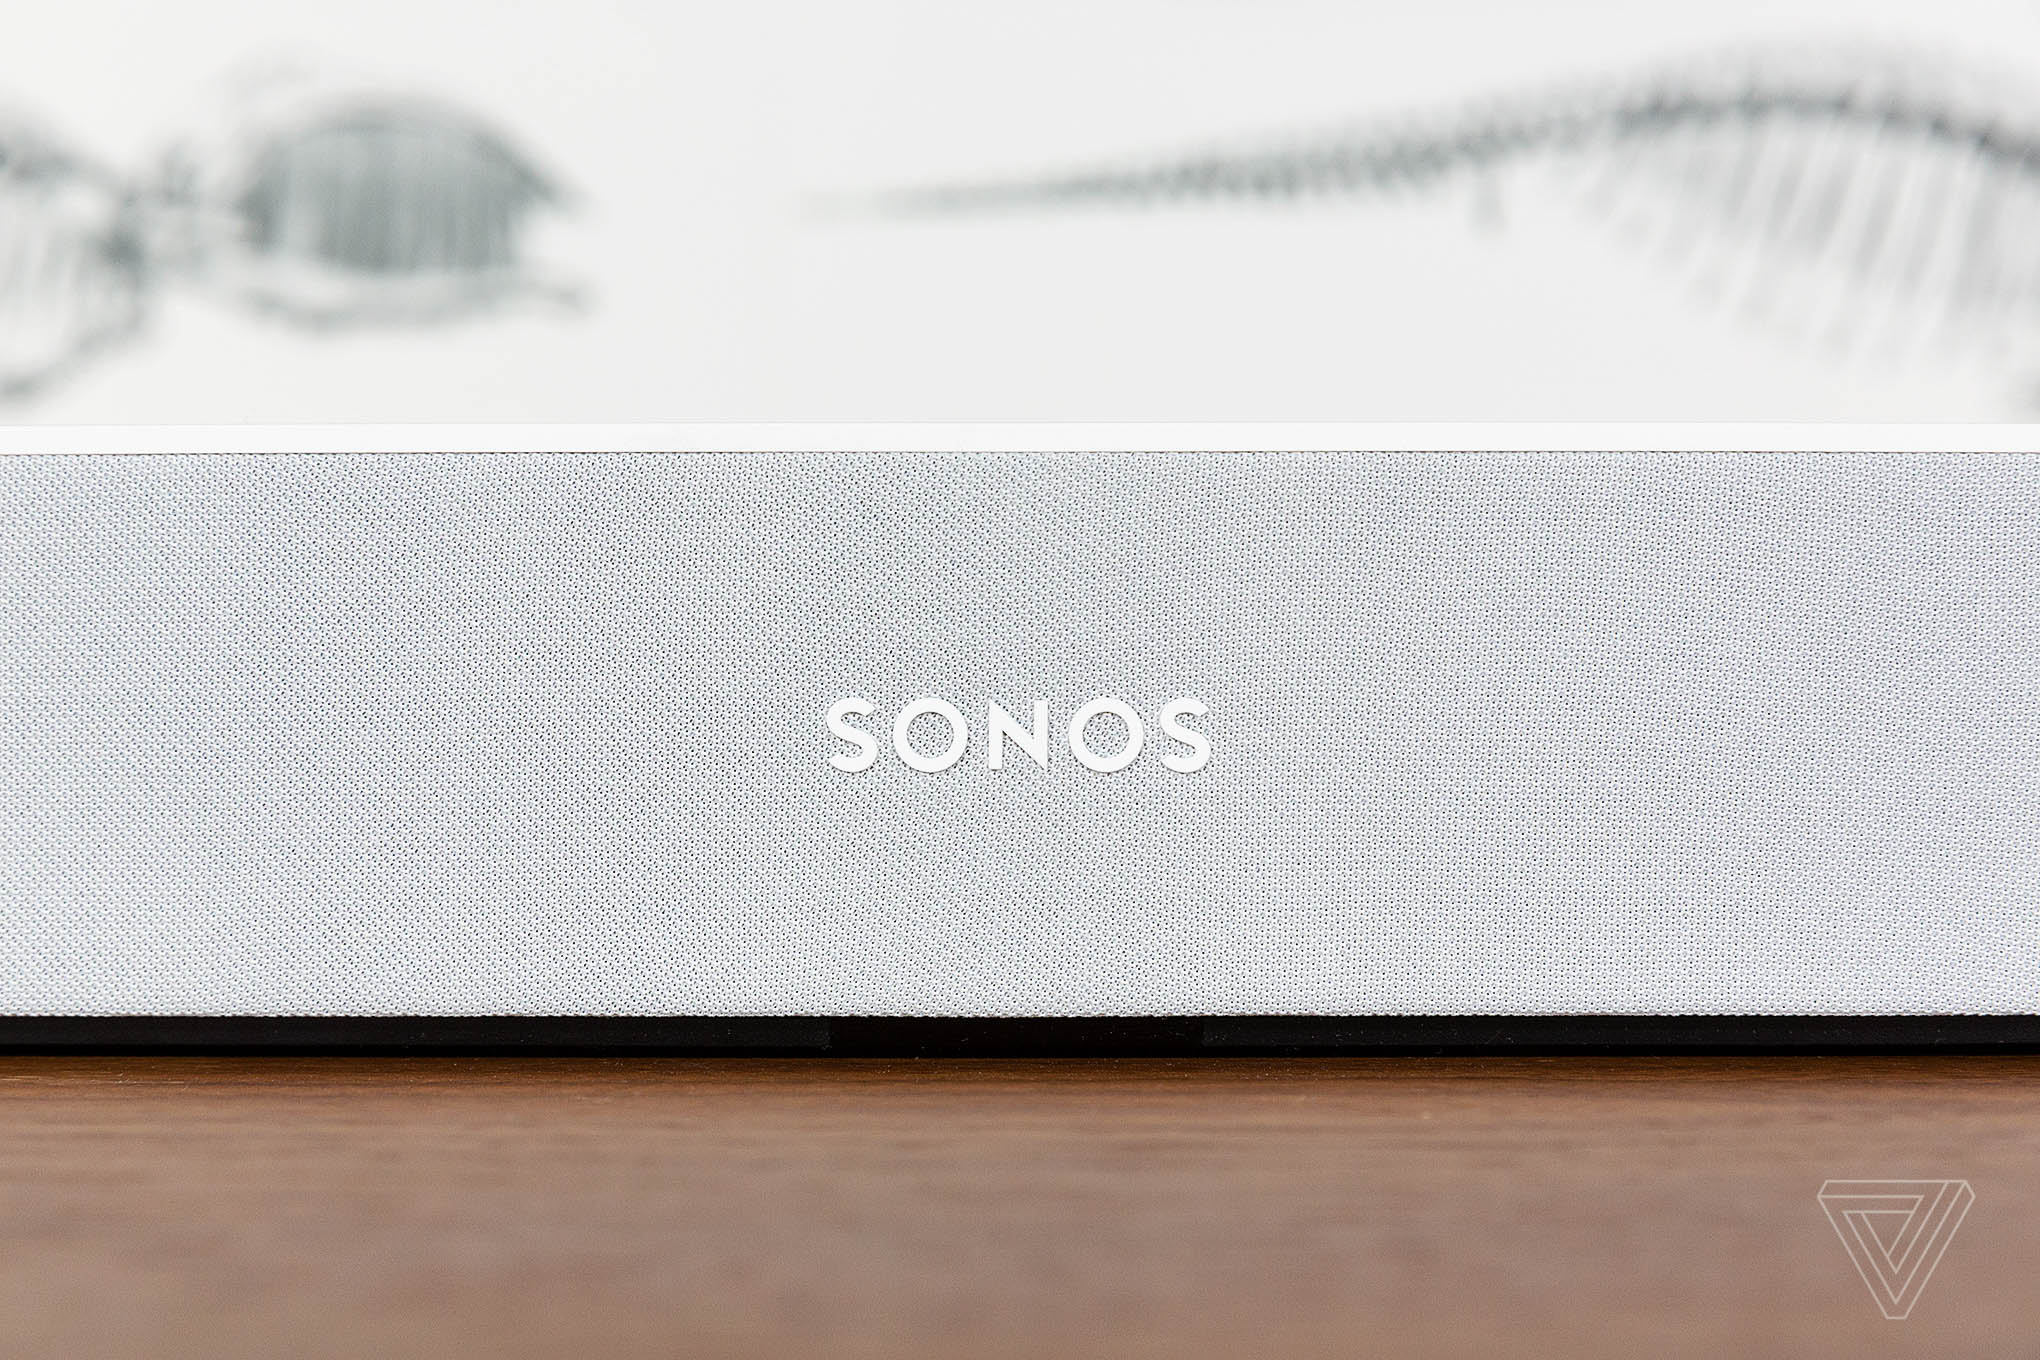 8b9f12940b4 Sonos reportedly planning to launch its own high-end headphones